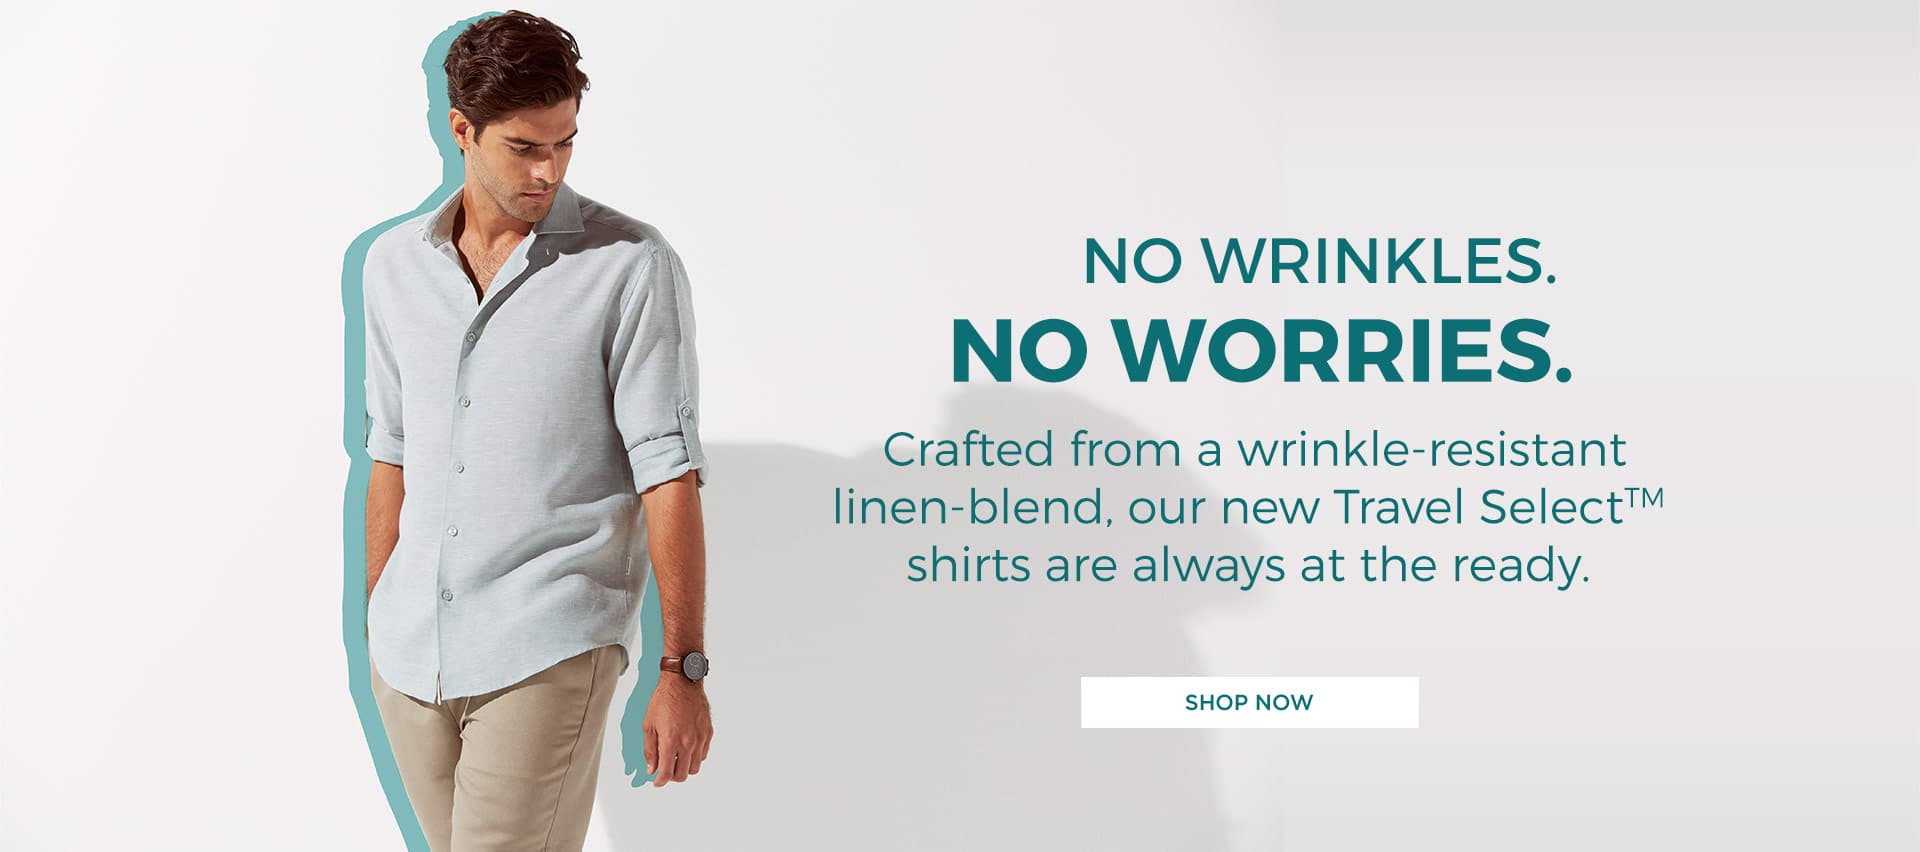 No wrinkles. No worries. - Shop Now